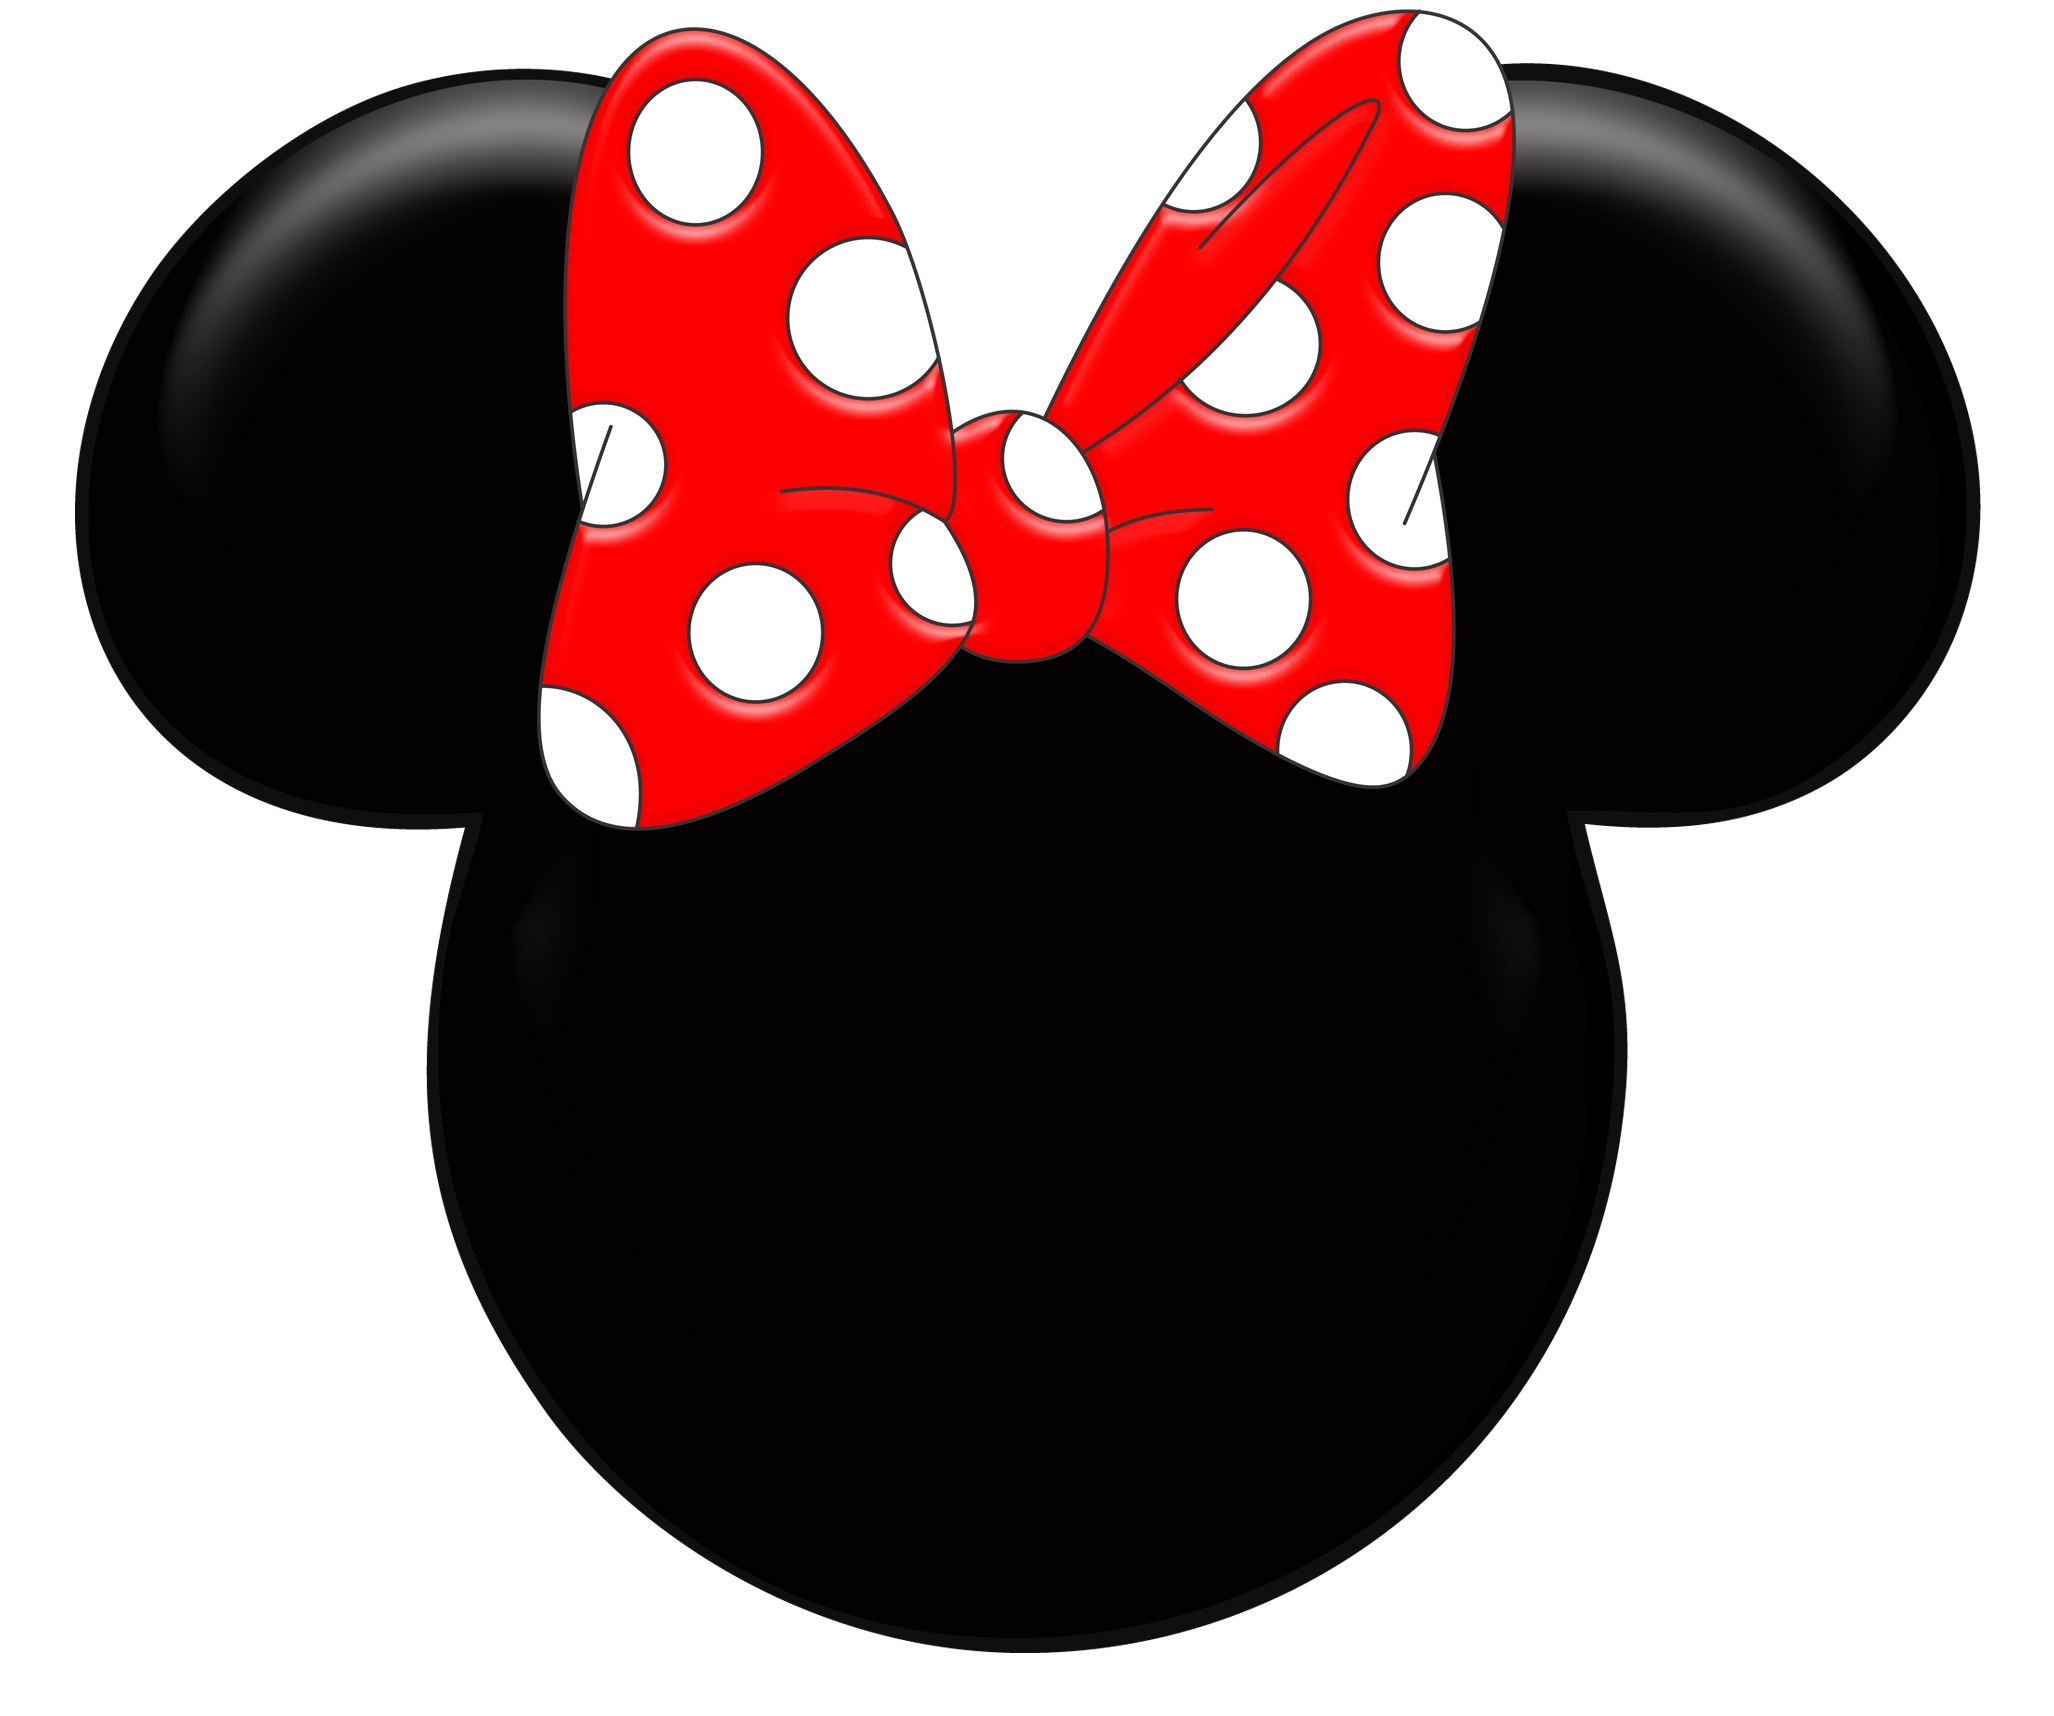 Red Minnie Mouse Wallpaper Ki - Minnie Mouse Silhouette Clip Art